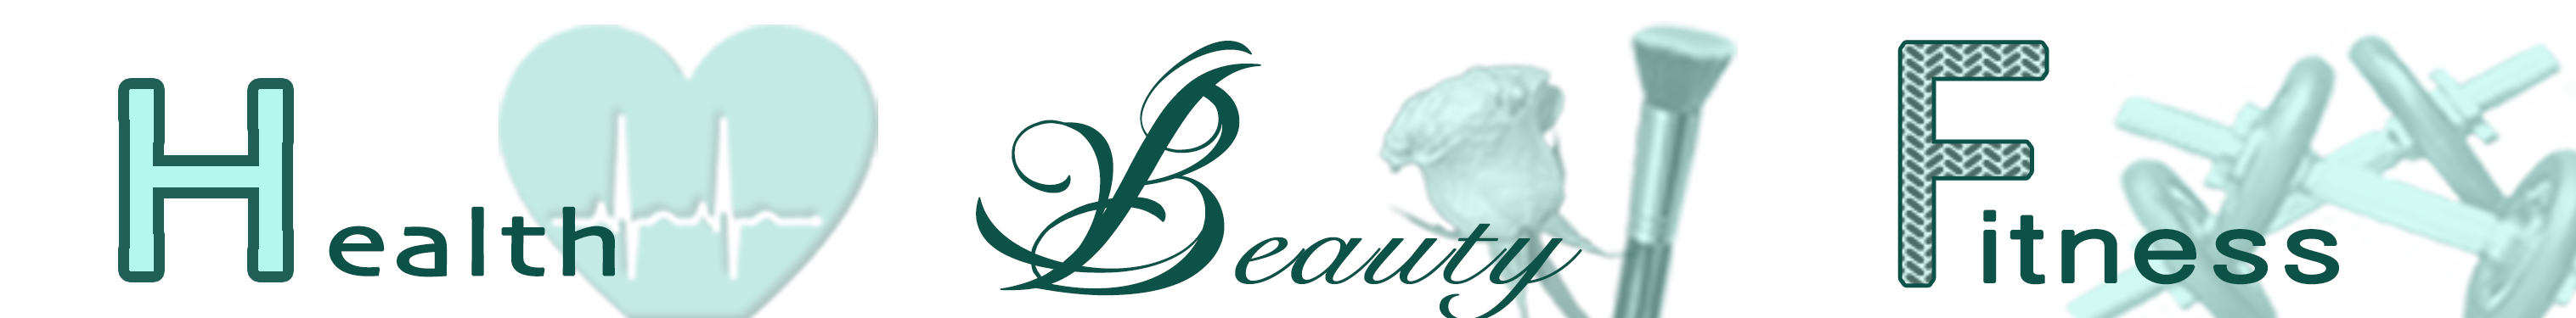 Become A Guest Blogger - Health Beauty & Fitness